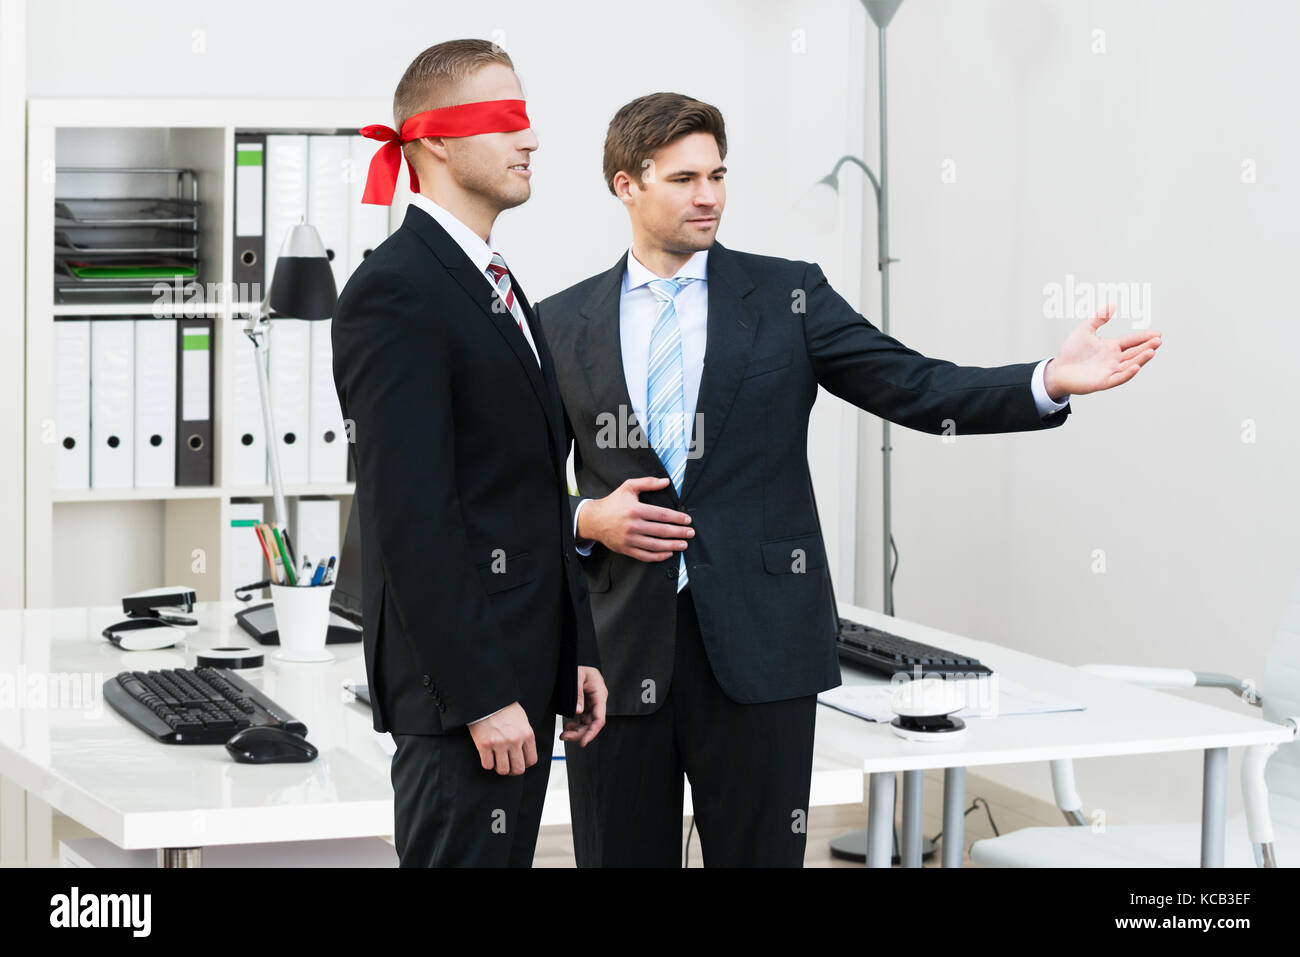 Confident Young Businessman Assisting Blindfolded Partner In Office - Stock Image